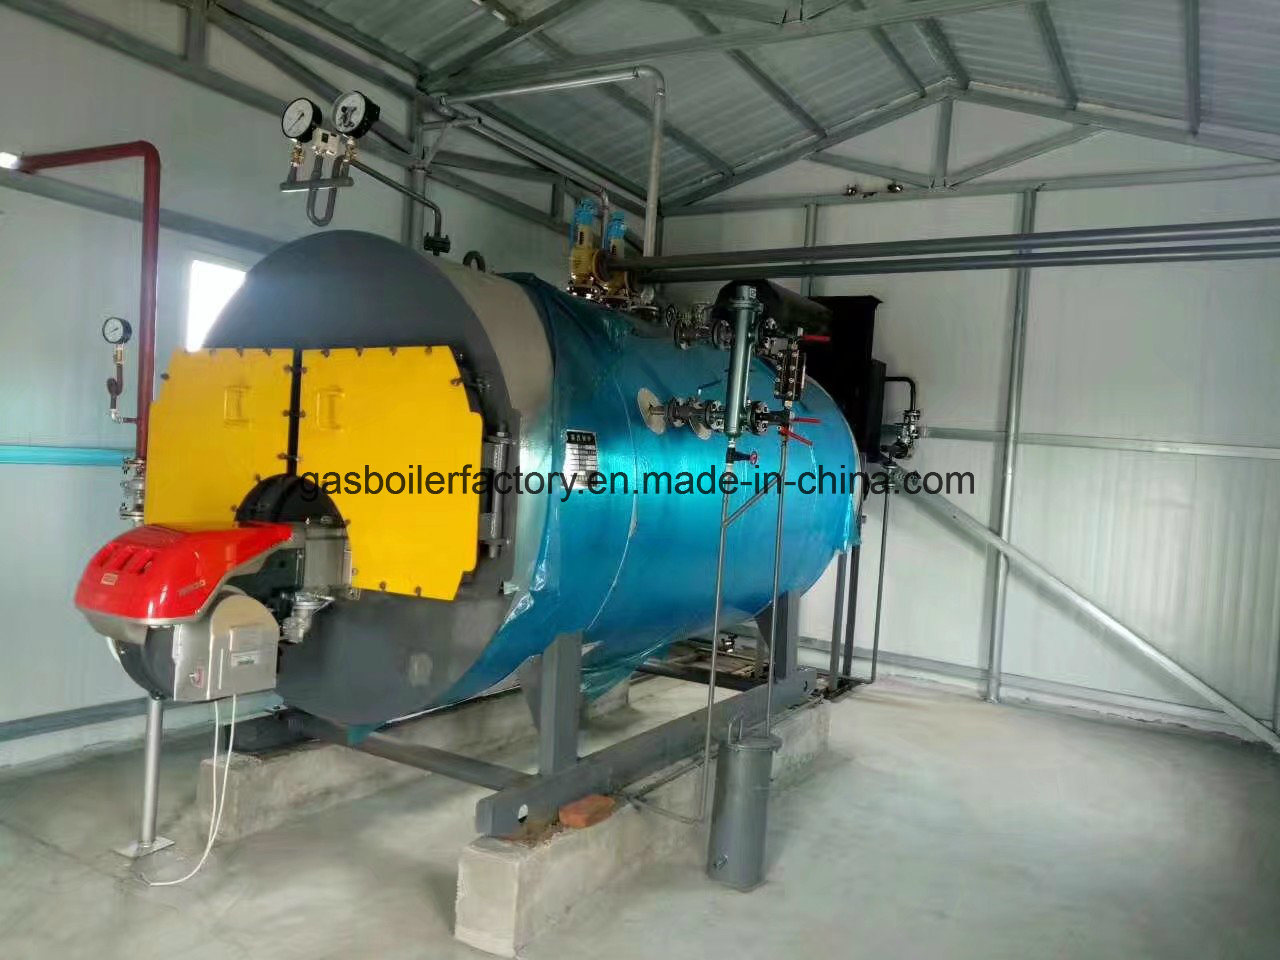 China Condensing Gas/Oil Fired Steam Boiler New Type 0.5t/H, 500kg/H ...